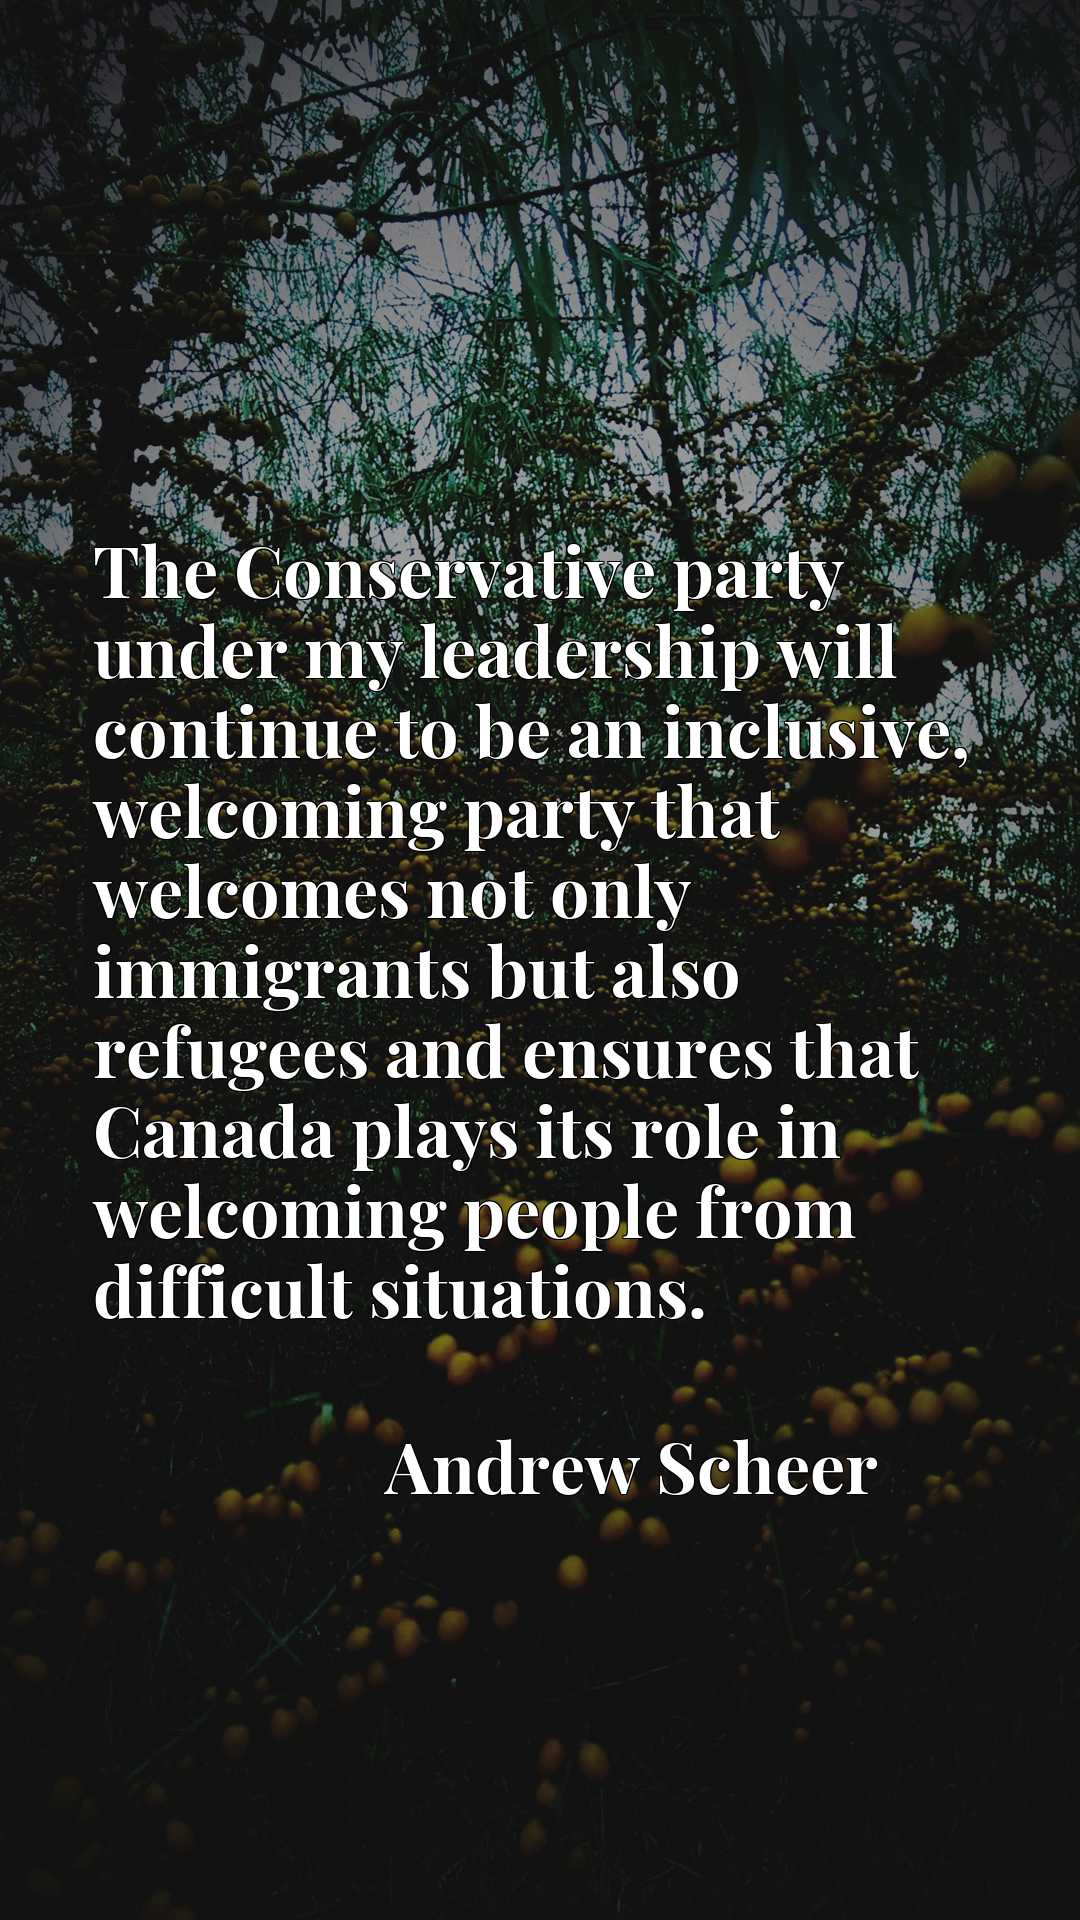 Quote Picture :The Conservative party under my leadership will continue to be an inclusive, welcoming party that welcomes not only immigrants but also refugees and ensures that Canada plays its role in welcoming people from difficult situations.